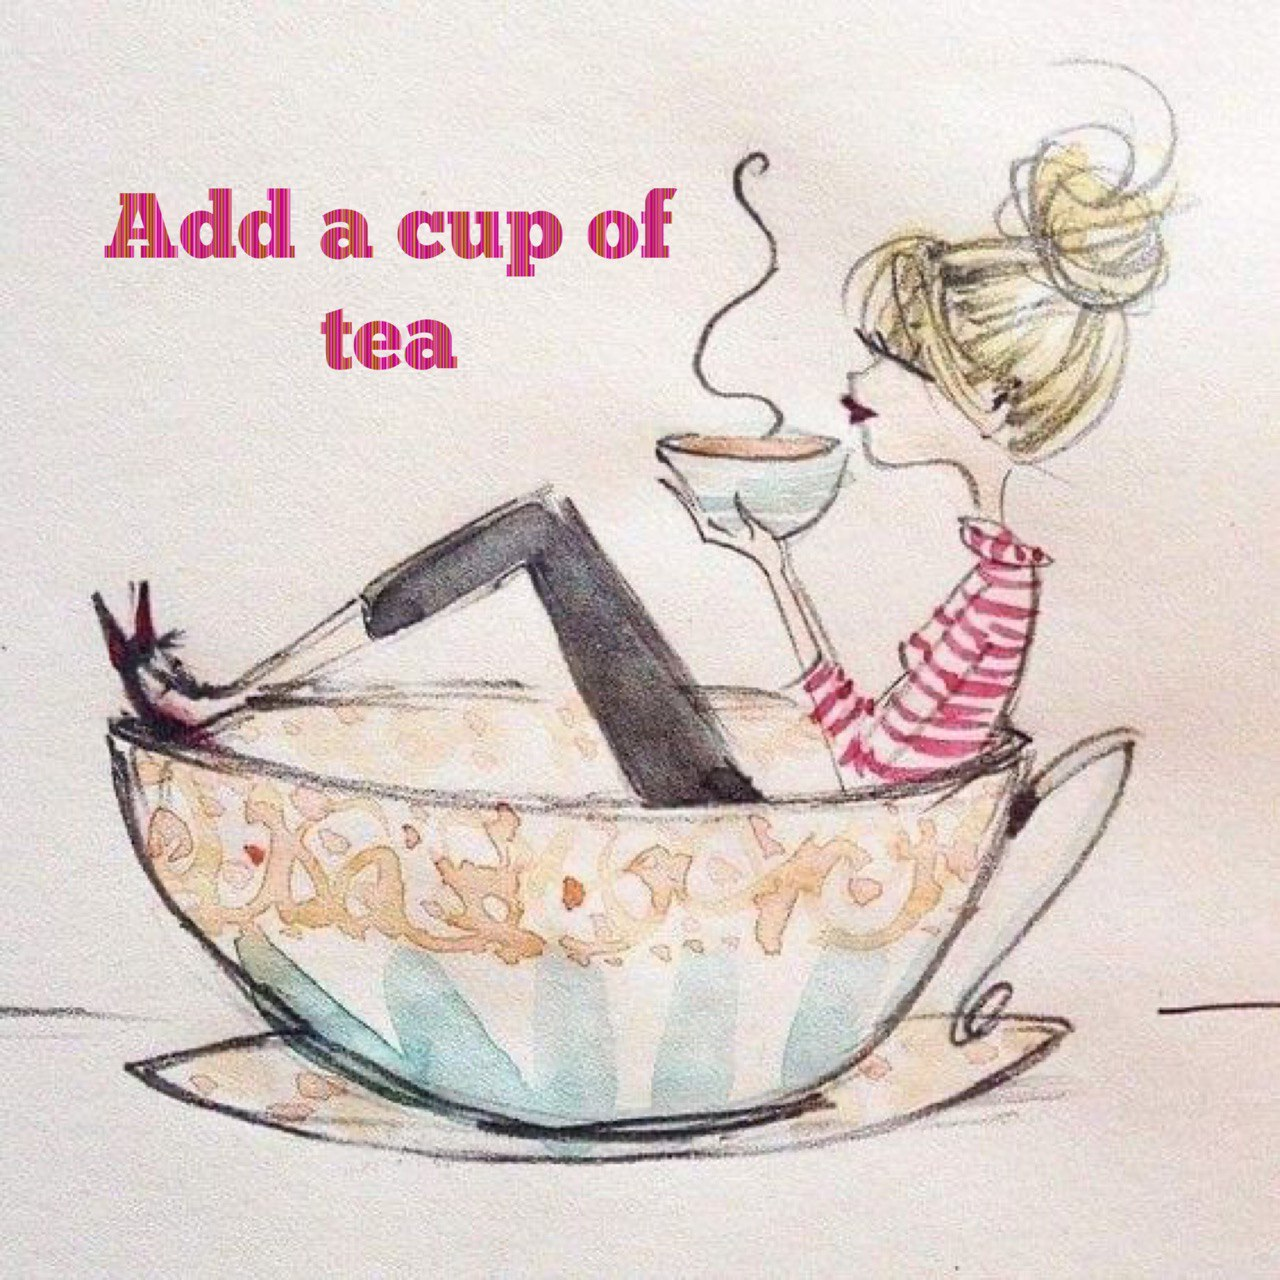 Add a cup of tea to your diet